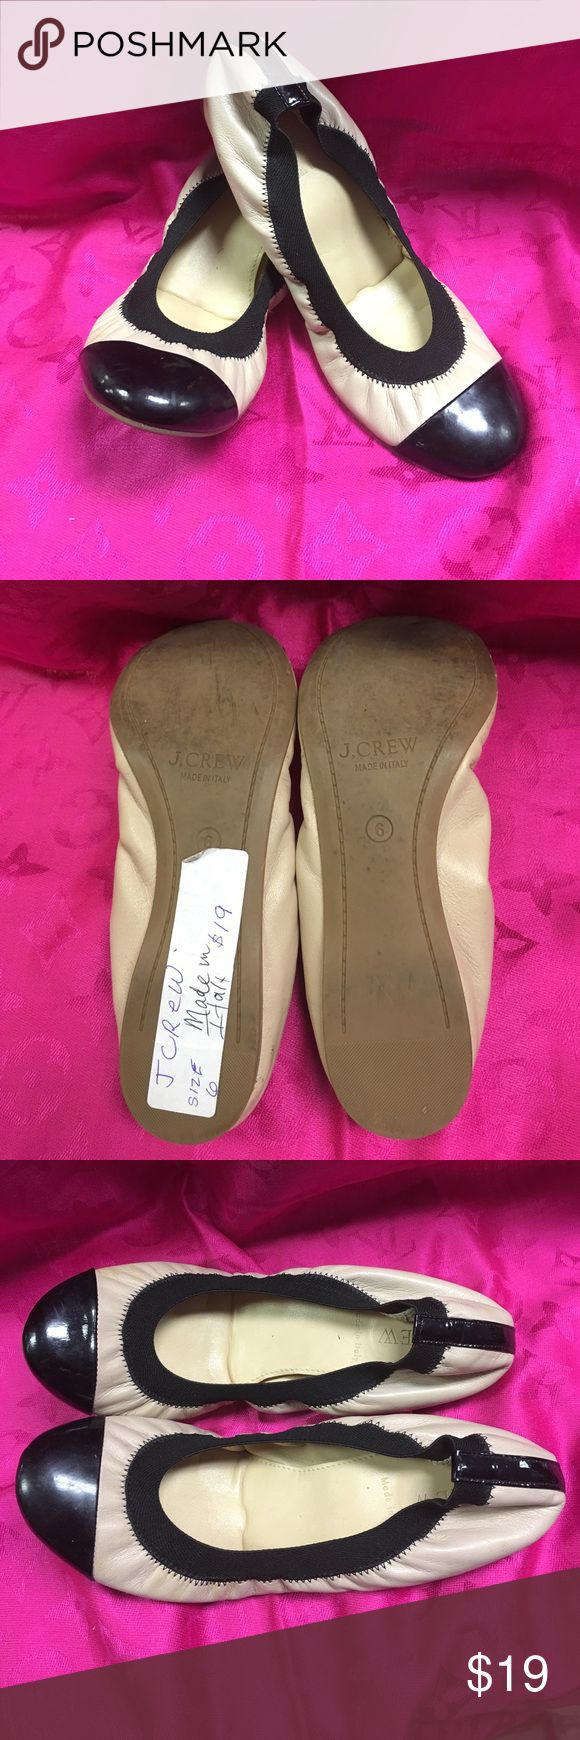 J. CREW BALLERINA SLIPPERS SZ 6 TAN AND BLACK J. crew size 6 ballerina slippers. Neutral color with black trim. Excellent condition. Made in Italy J. Crew Shoes Flats & Loafers